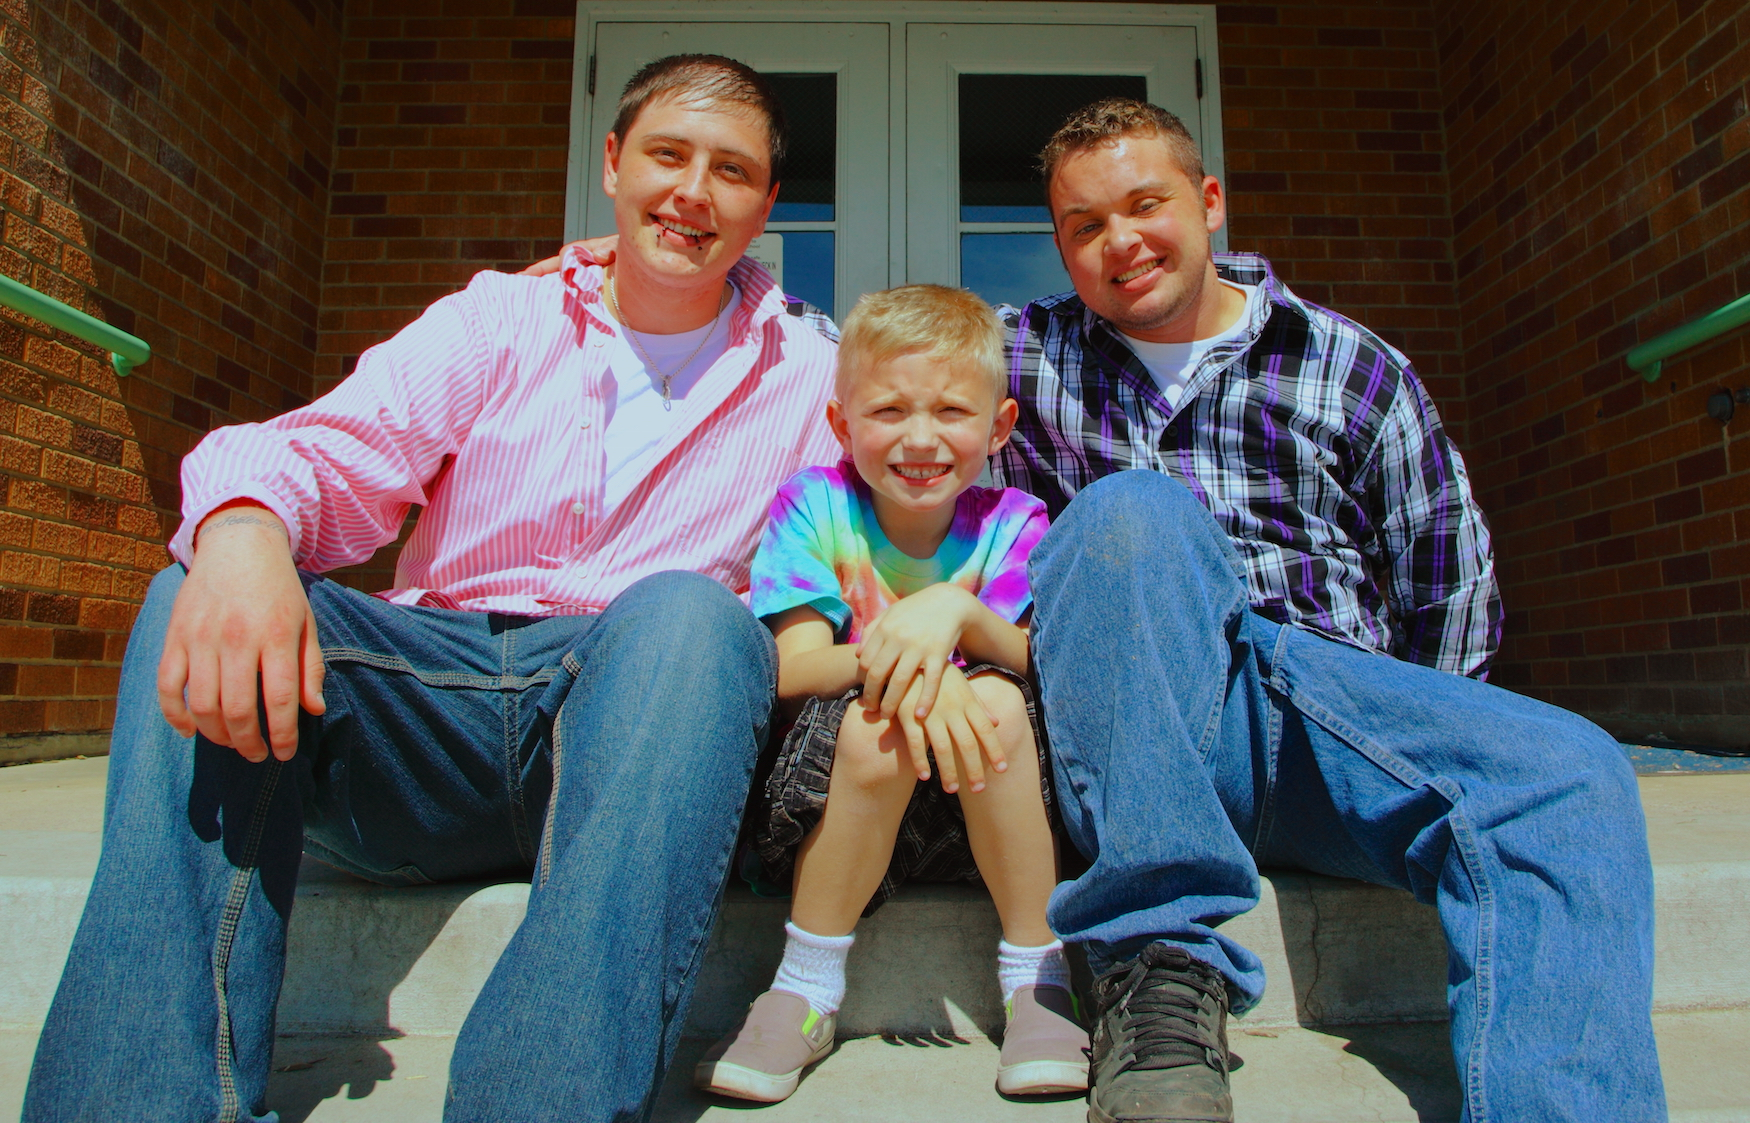 Utah couple Liam and Curtis pose with their son. Creative Commons photo by Sharon Mattheson-McCutcheon.